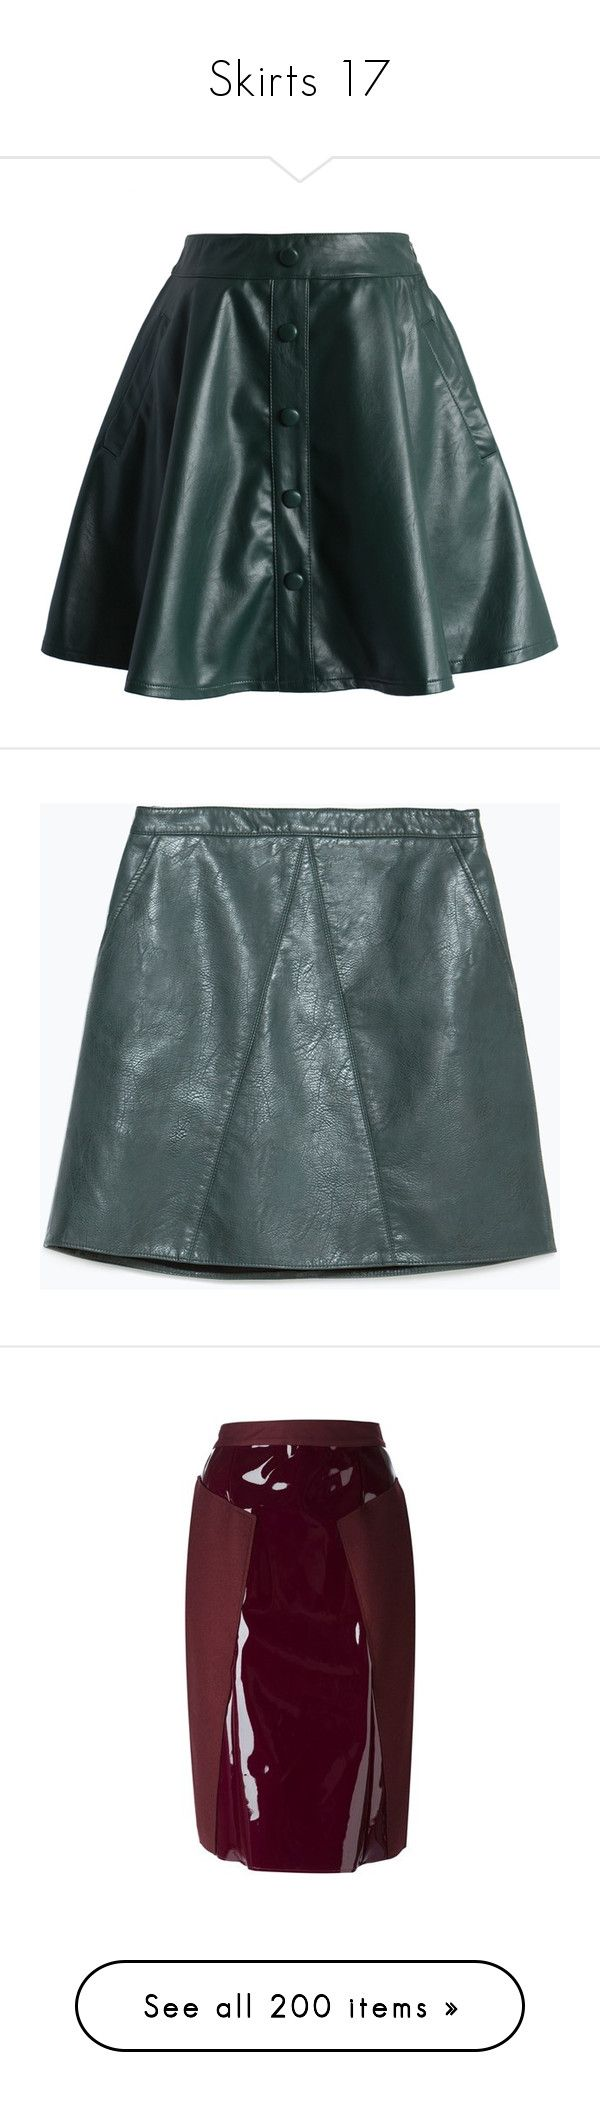 """""""Skirts 17"""" by katiemarilexa ❤ liked on Polyvore featuring skirts, chicwish, green, green a line skirt, faux-leather skirts, knee length a line skirt, leather look skirt, chicwish skirt, bottoms and leather"""